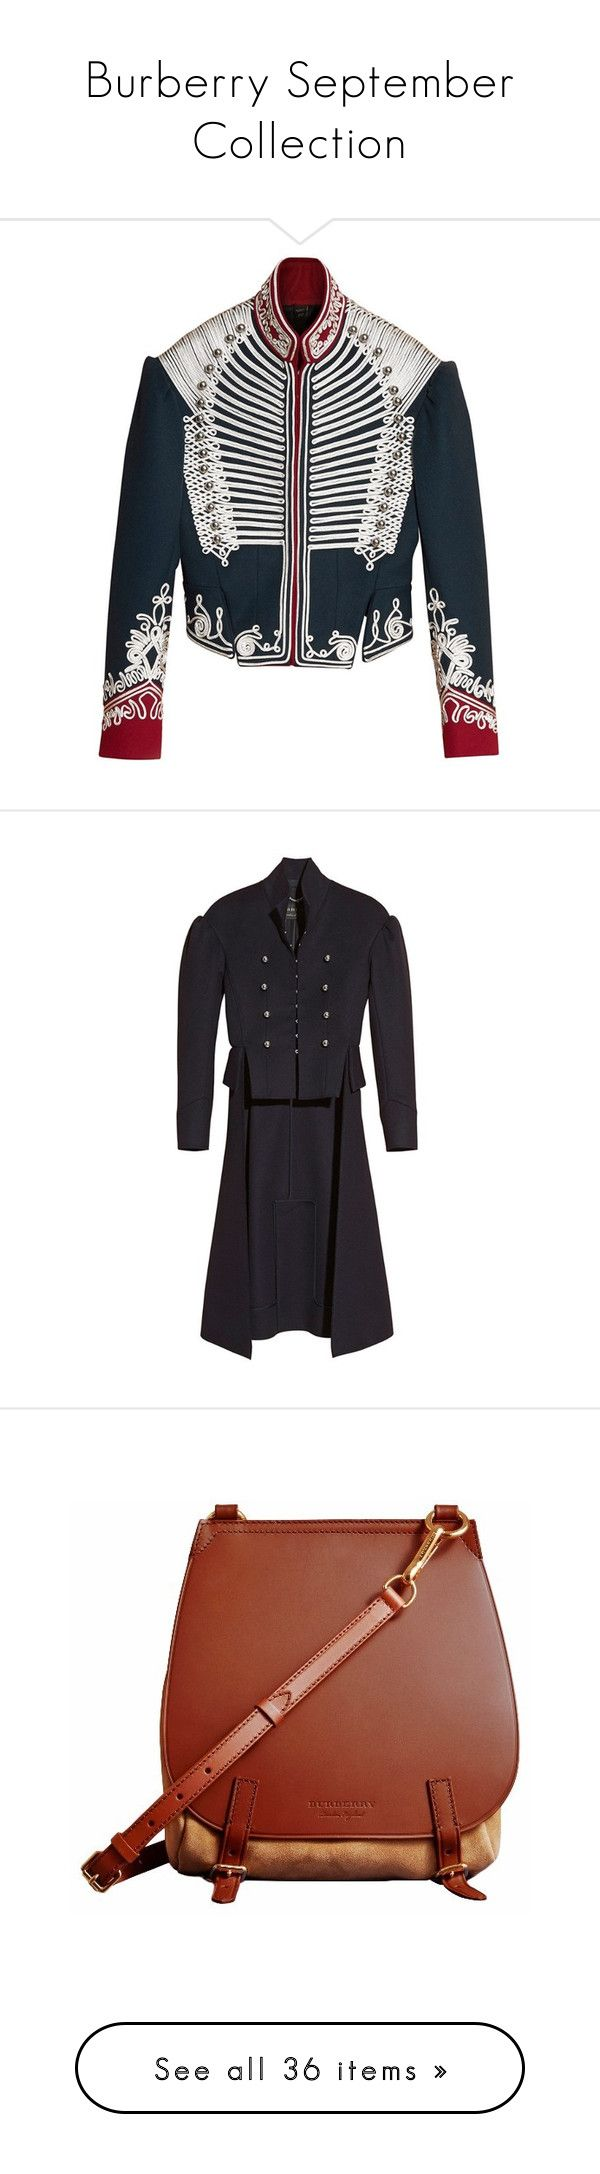 """""""Burberry September Collection"""" by burberry ❤ liked on Polyvore featuring burberry, outerwear, coats, military style coat, burberry coat, stand collar coat, military coat, bags, handbags and shoulder bags"""